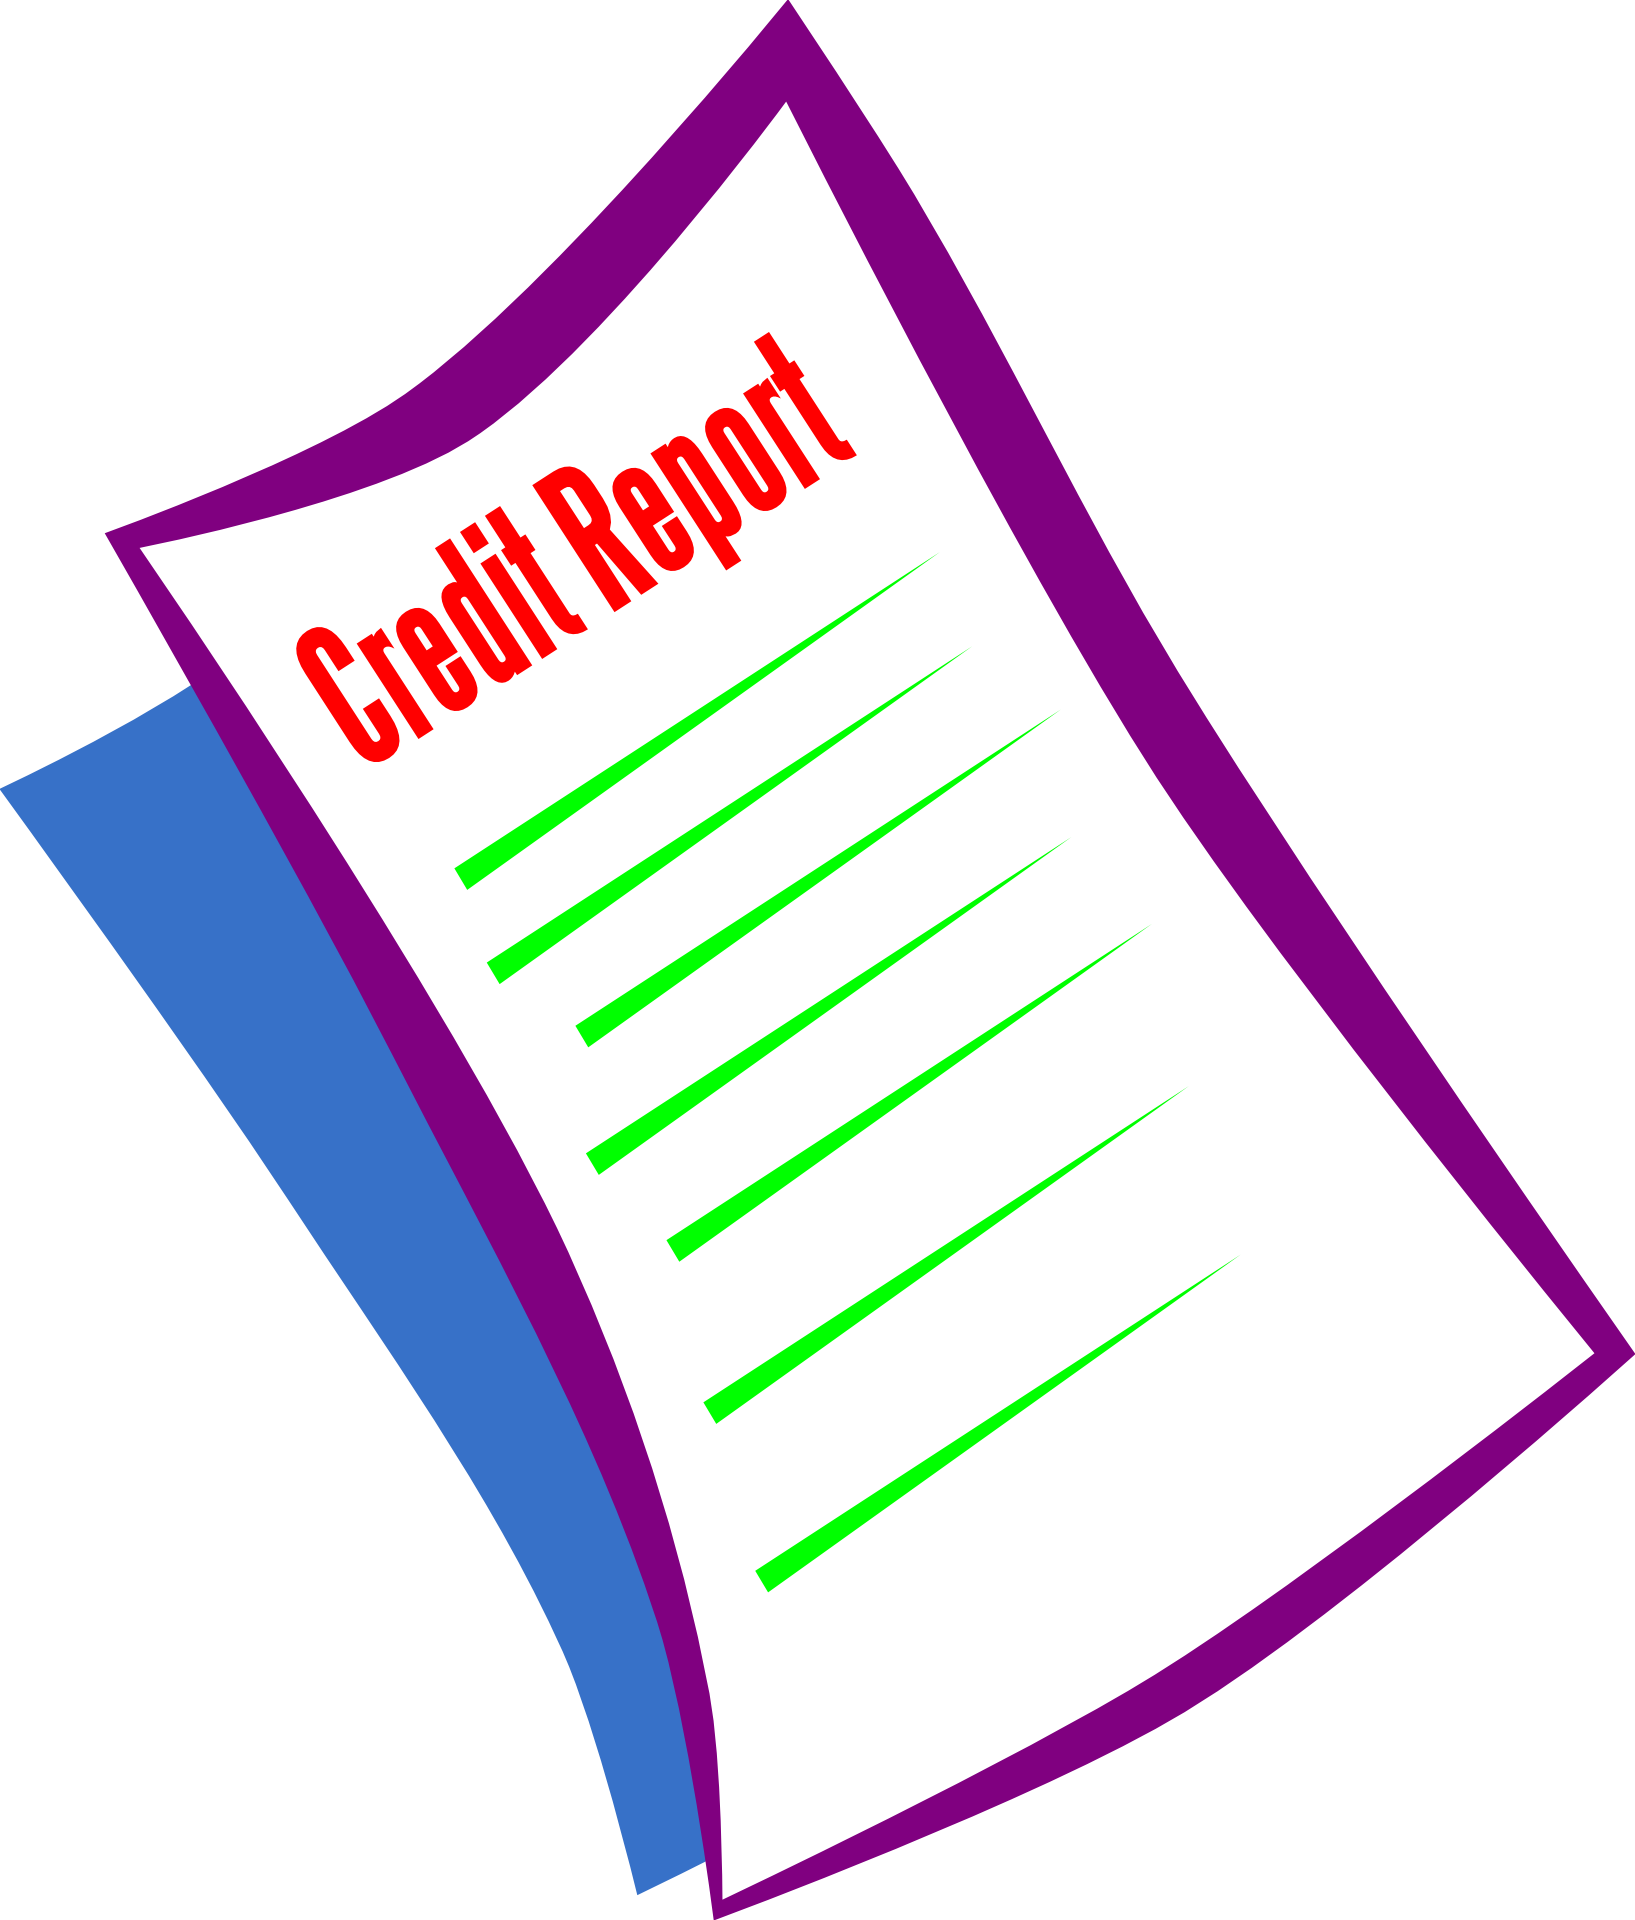 clip freeuse Commercial credit checks in. Check clipart data reports.